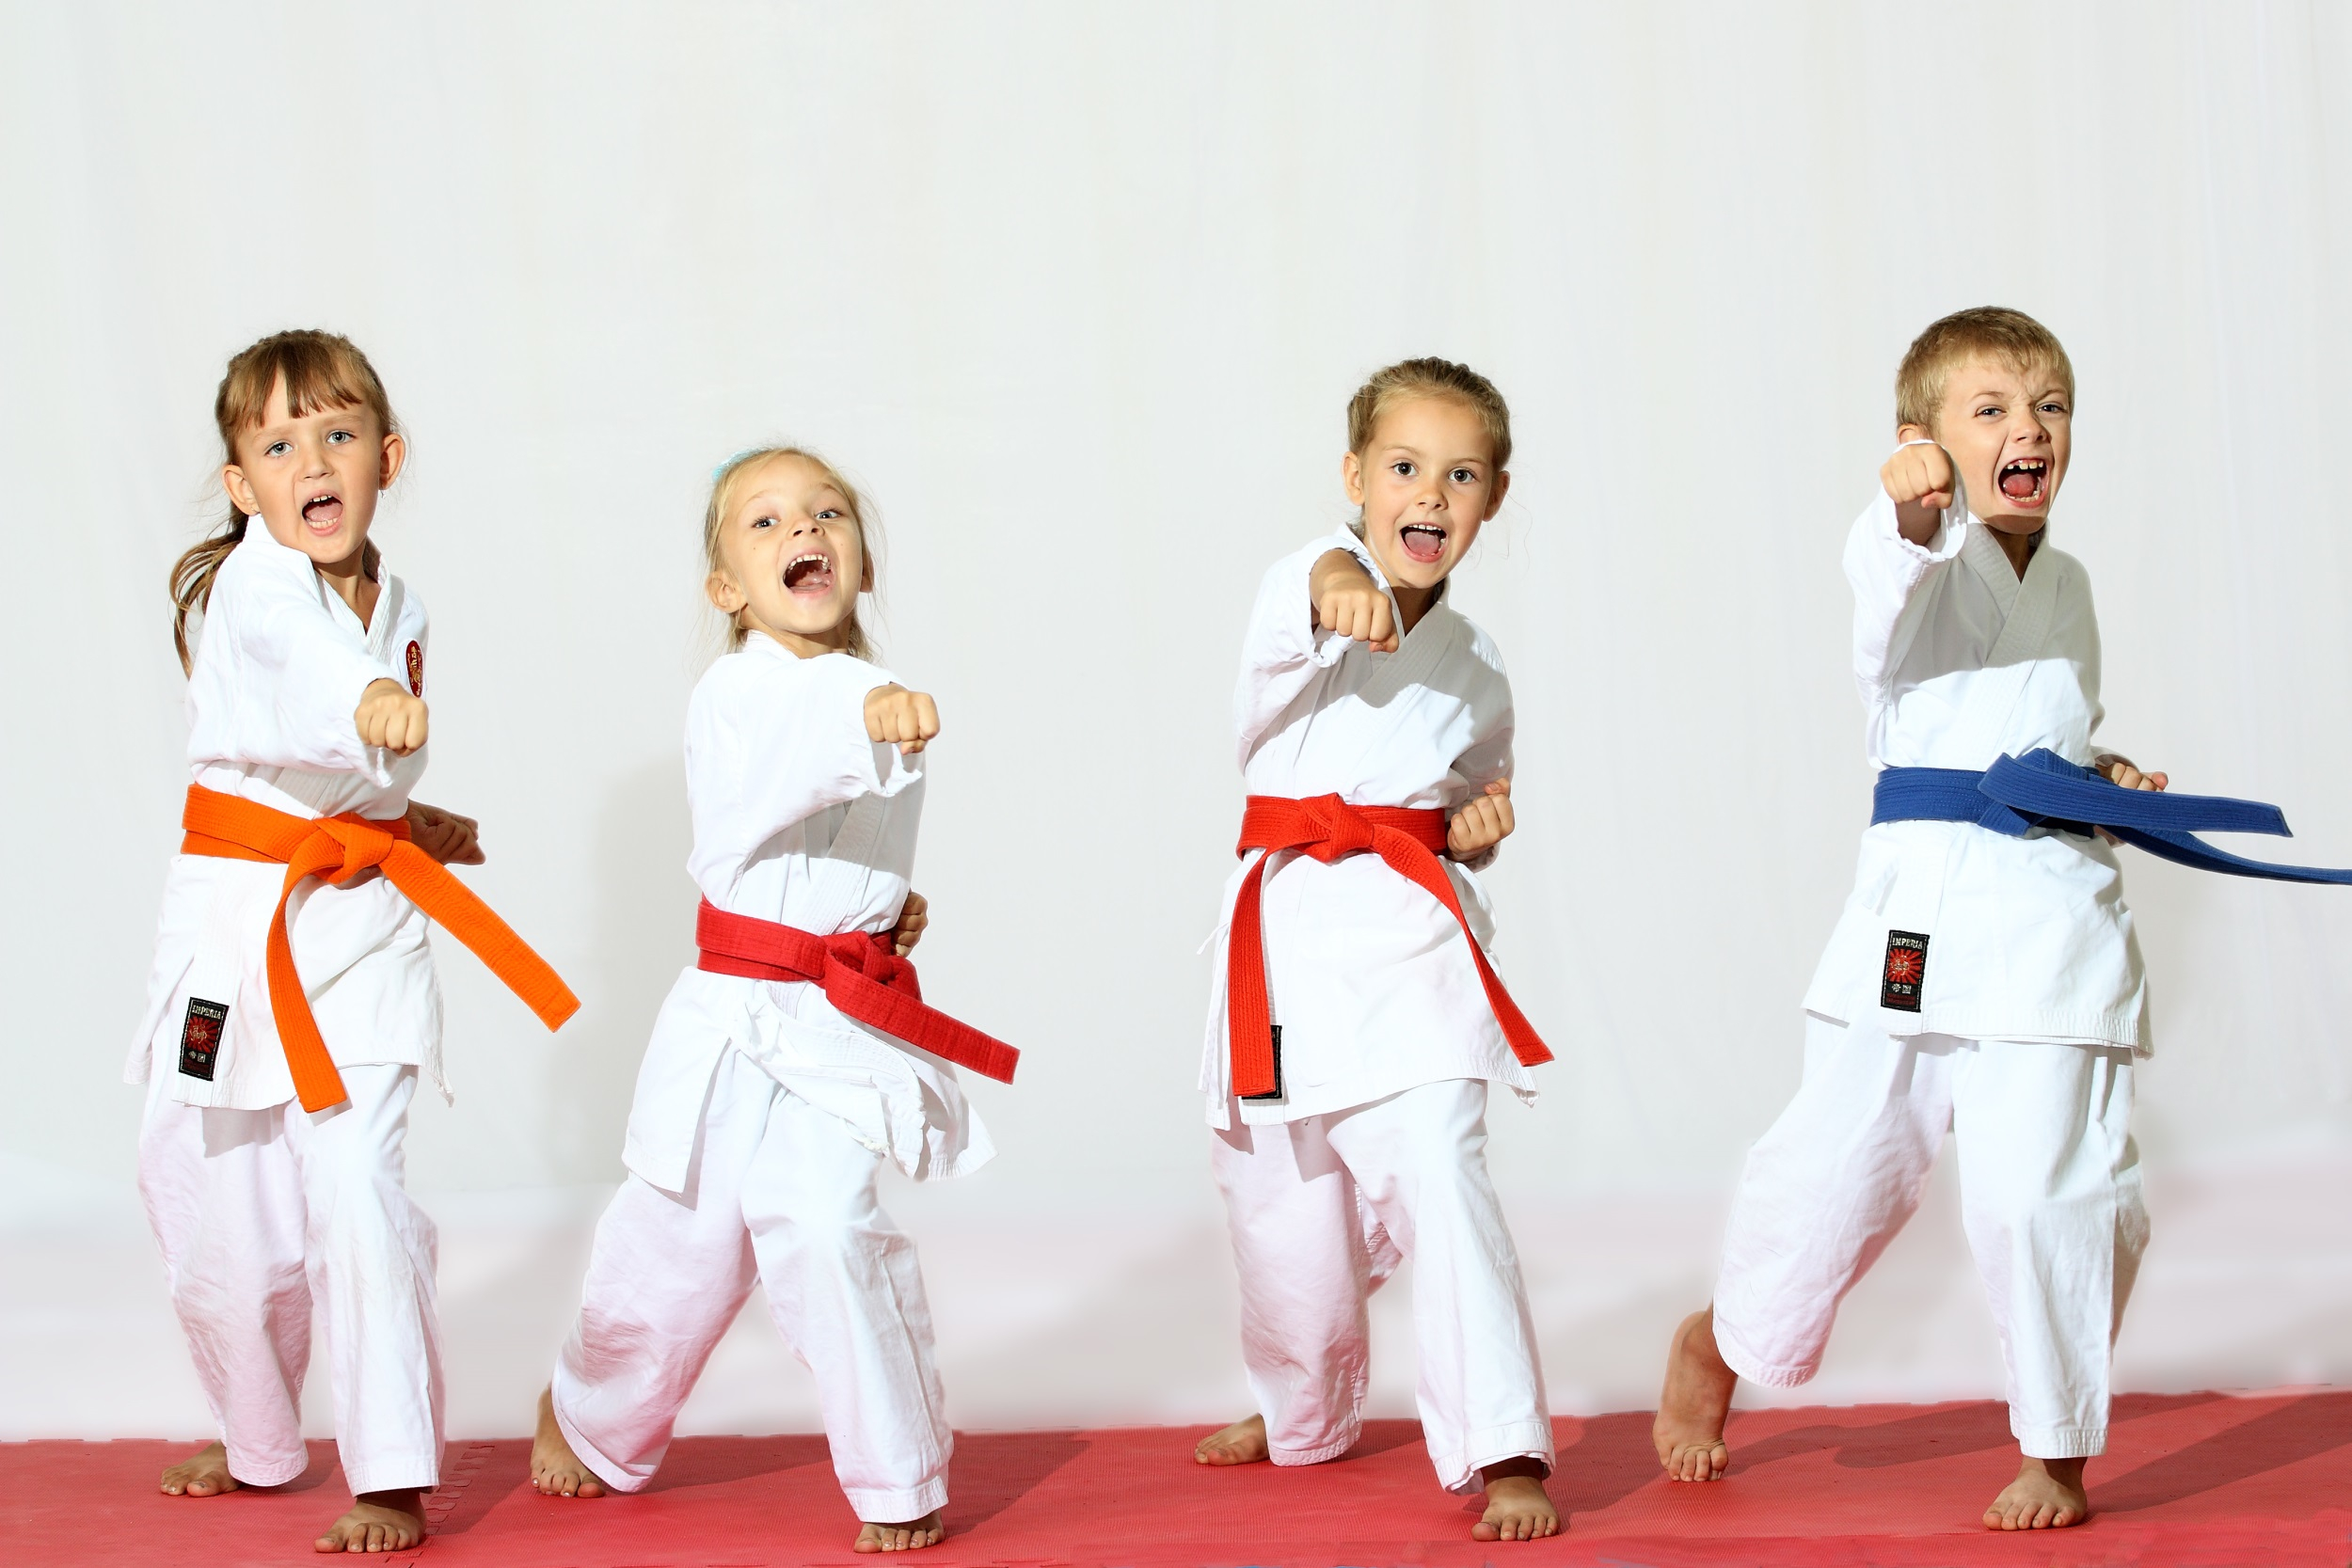 Glenmore-Martial-Arts-Kids-Martial-Arts.jpg